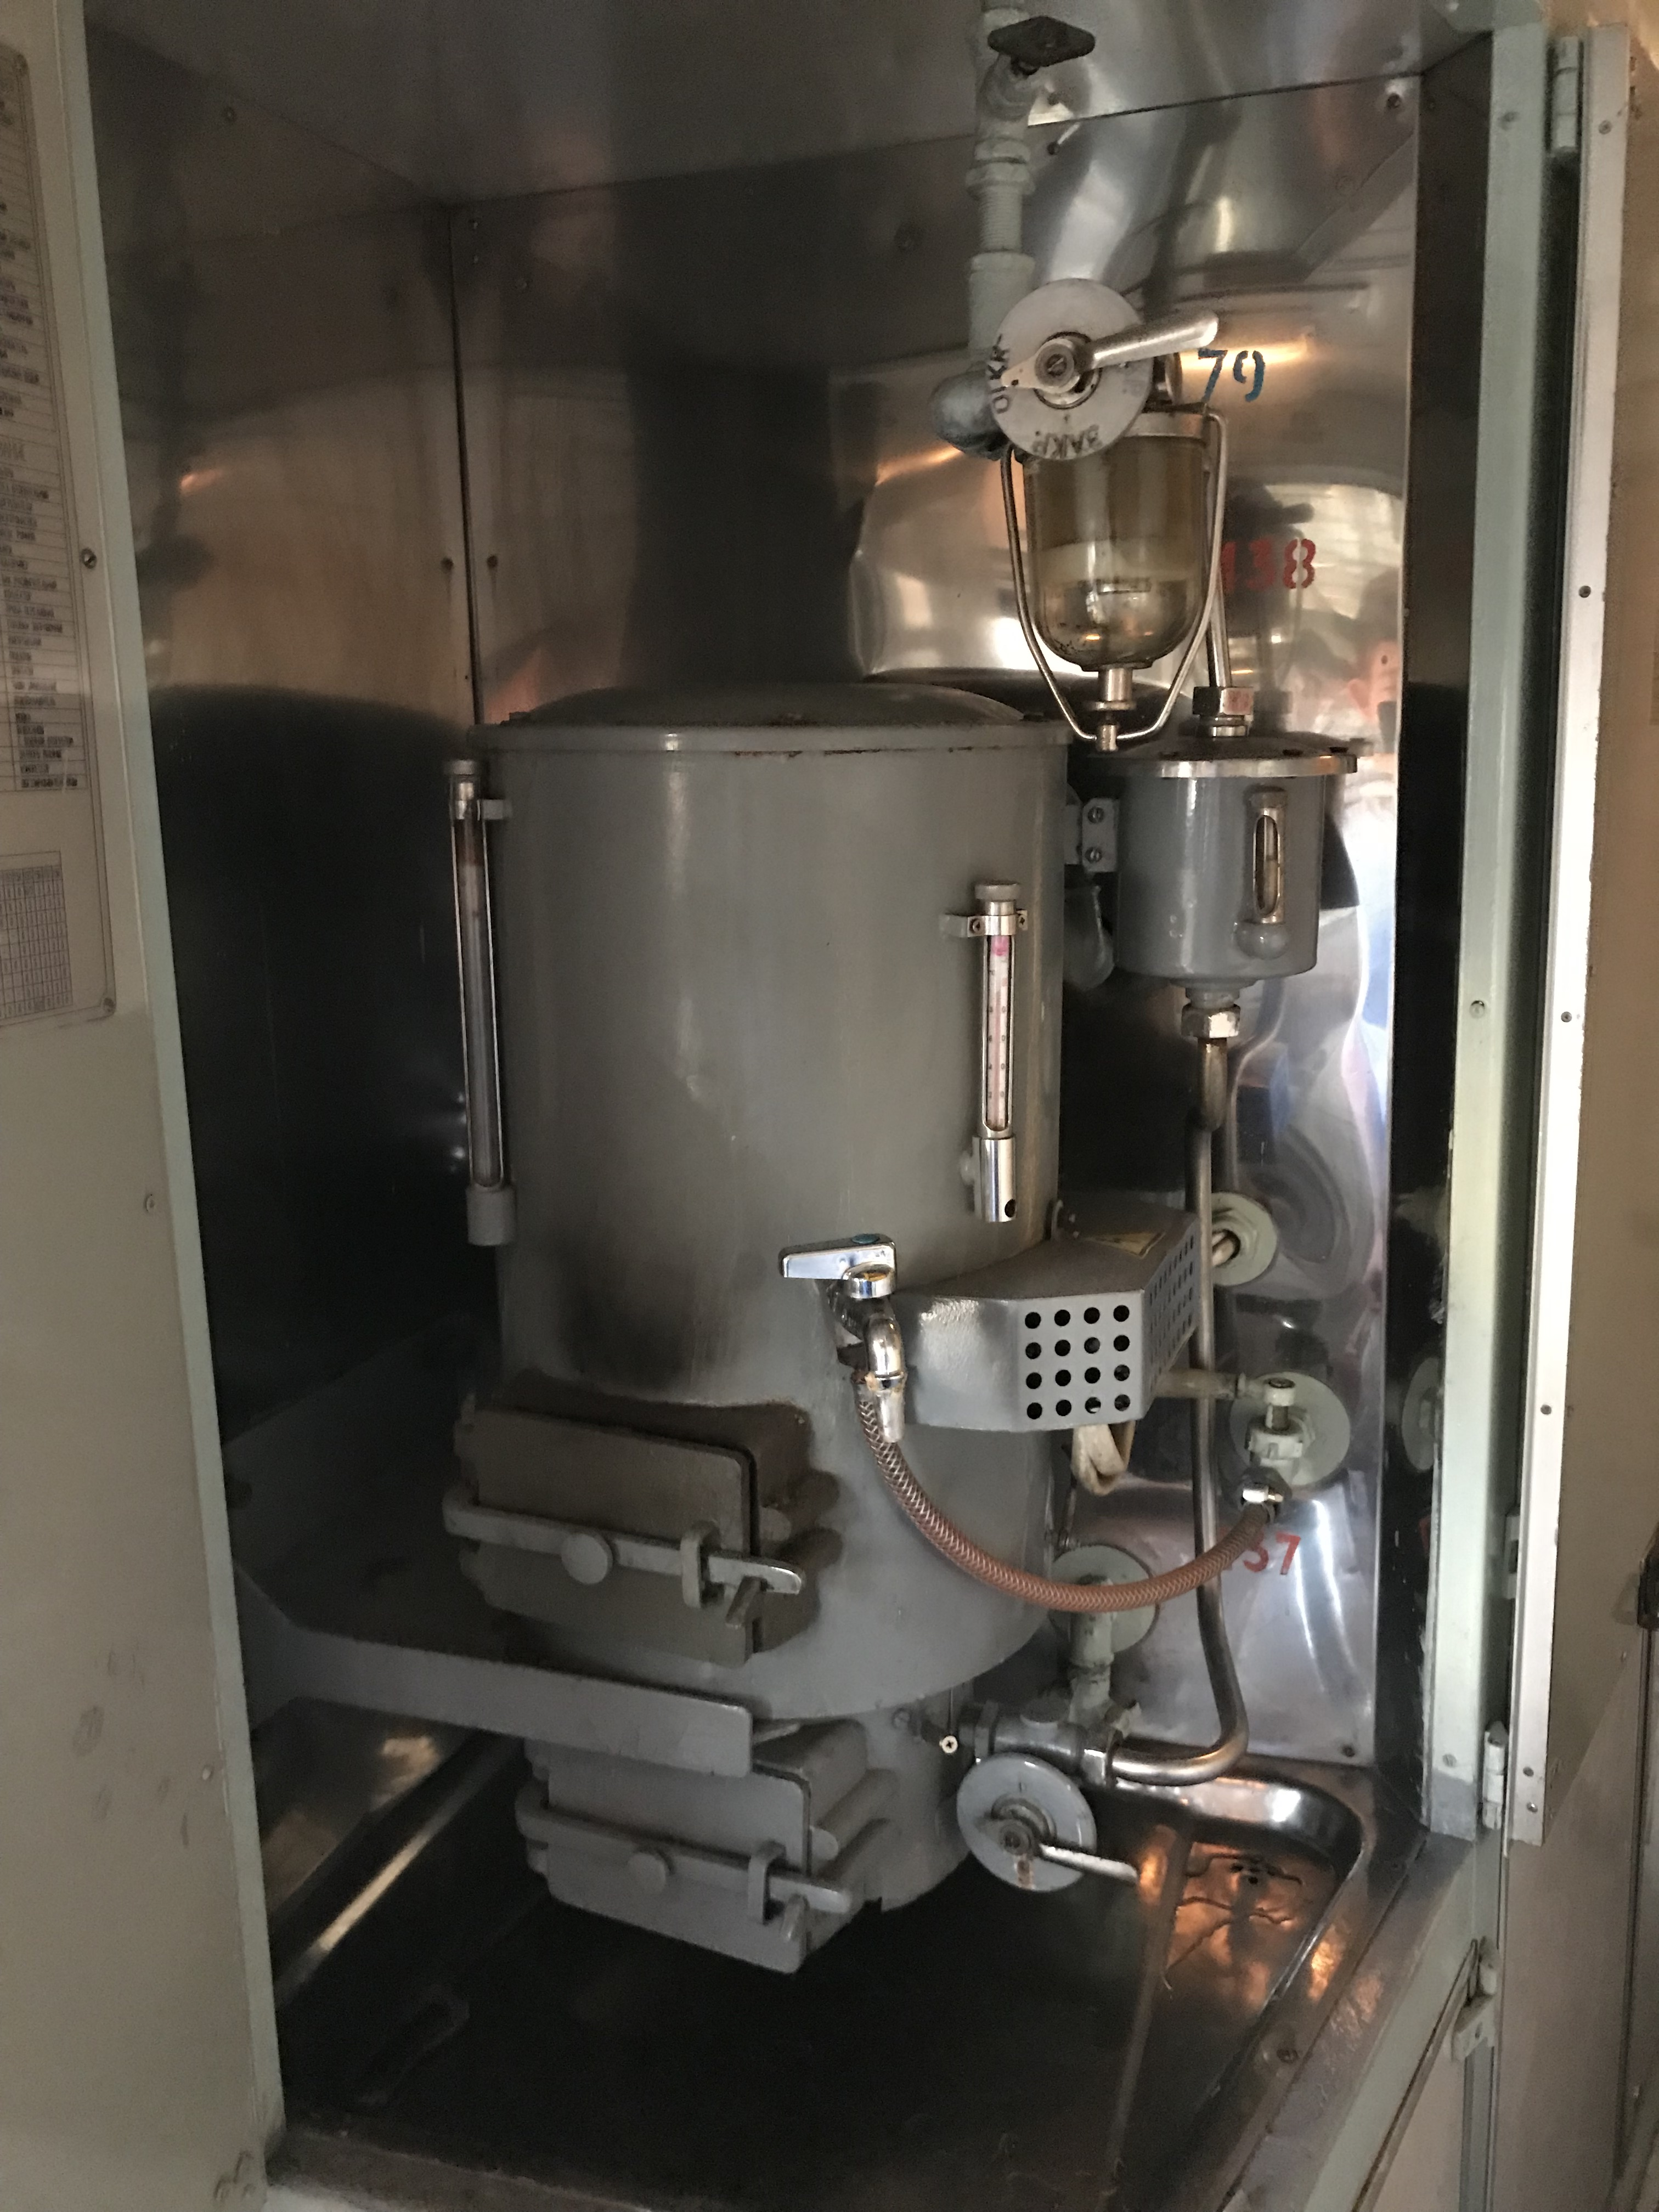 A water heater provides scalding water in every car.